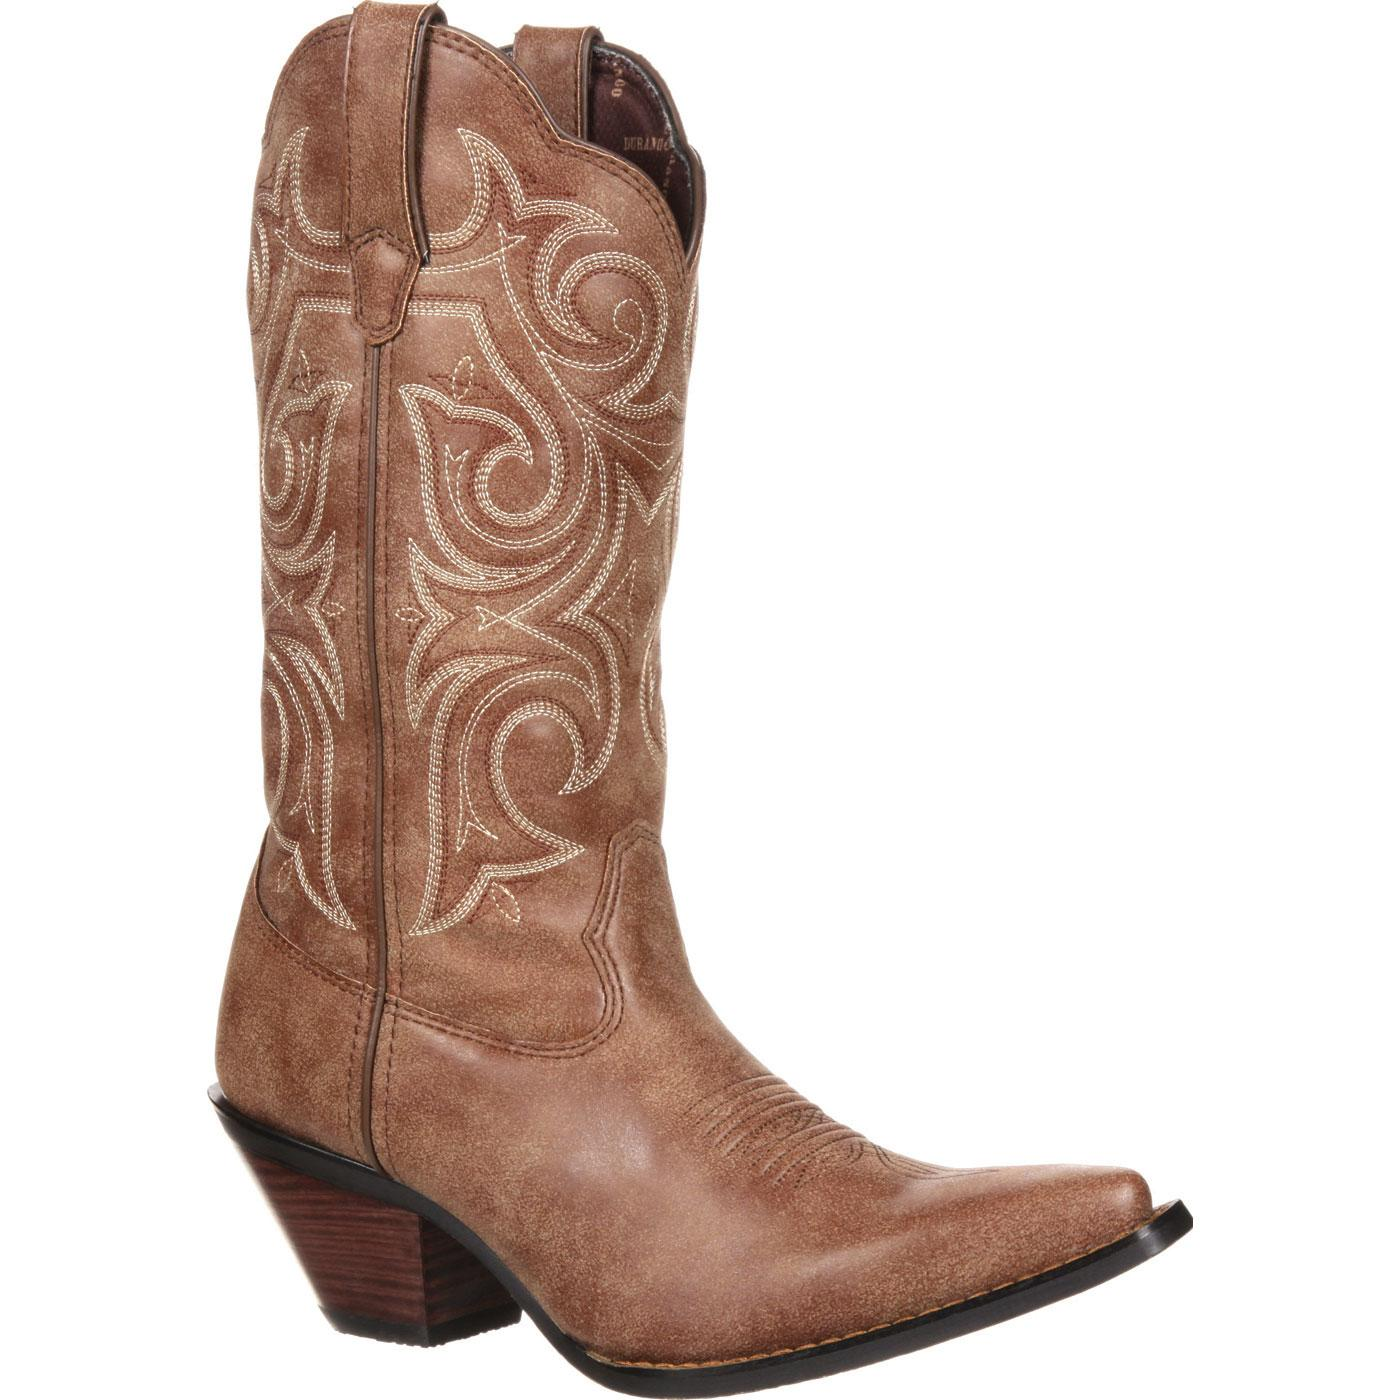 Durango Womens Boots Crush 11 Inch Western Scall Upped Cinnamon